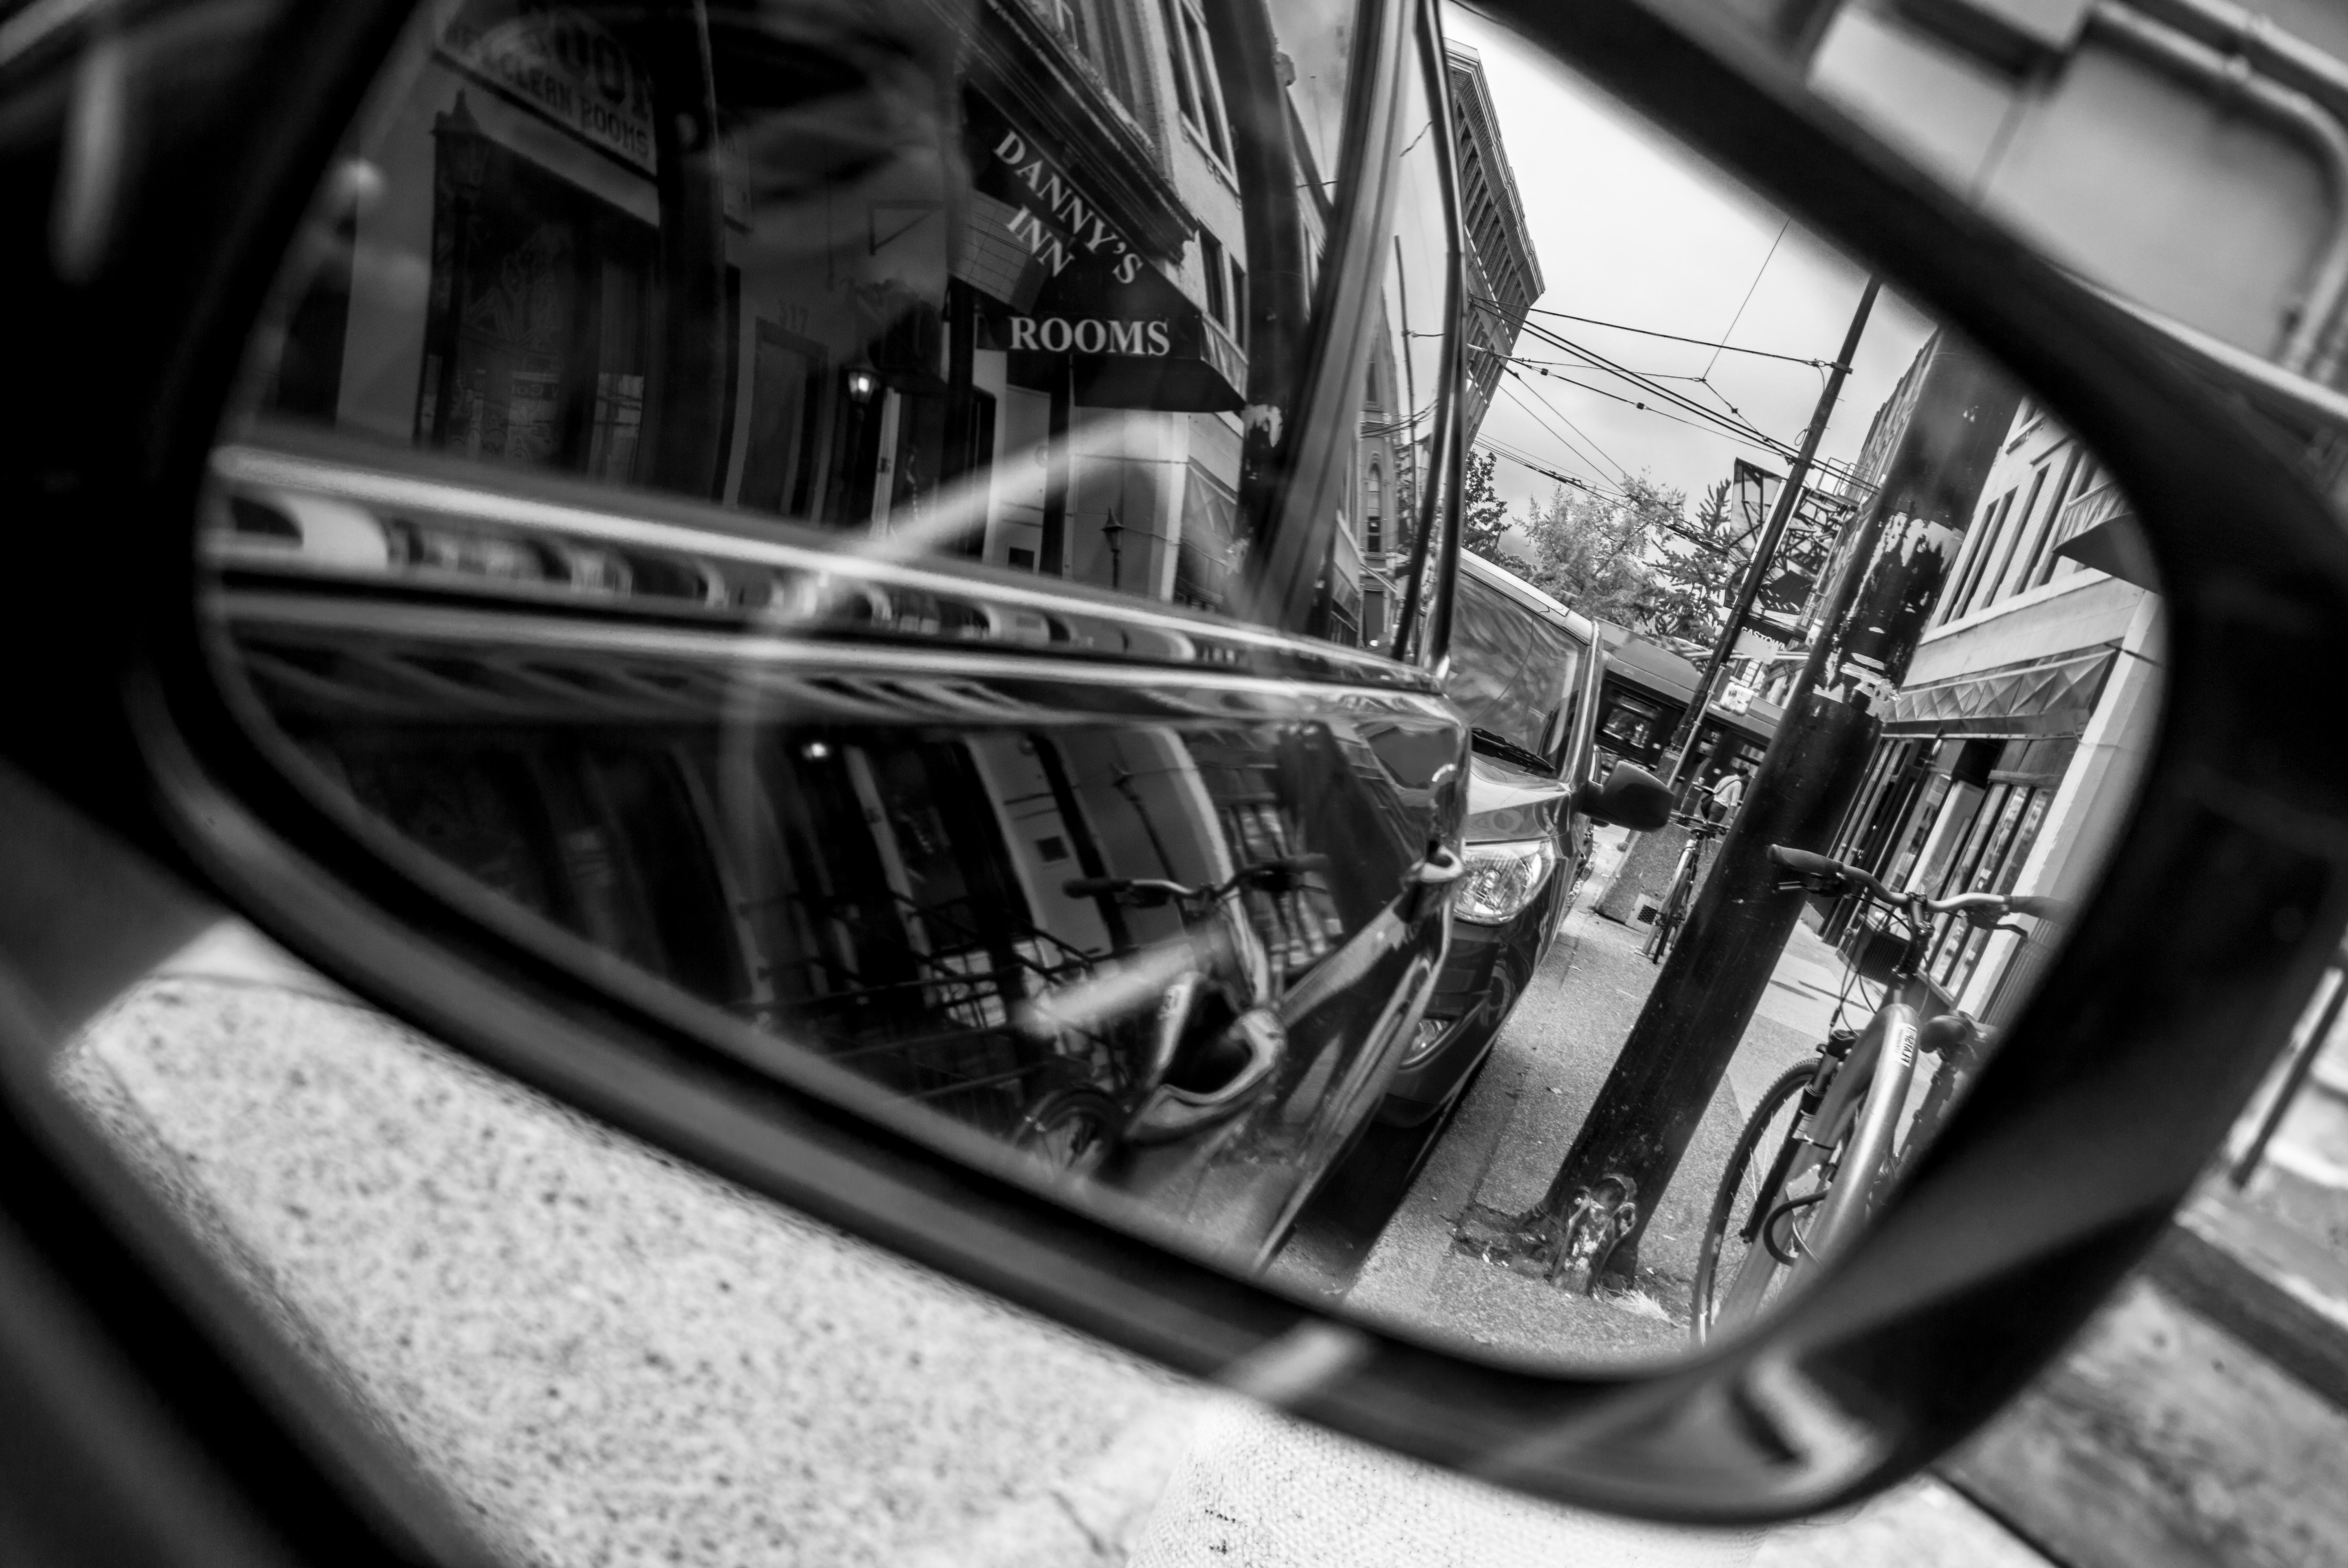 That leica m-d is a mighty fine camera! enjoyed taking this mirror shot! IMG_4261, Road, Vancouver, Reflection, Mirror, HQ Photo